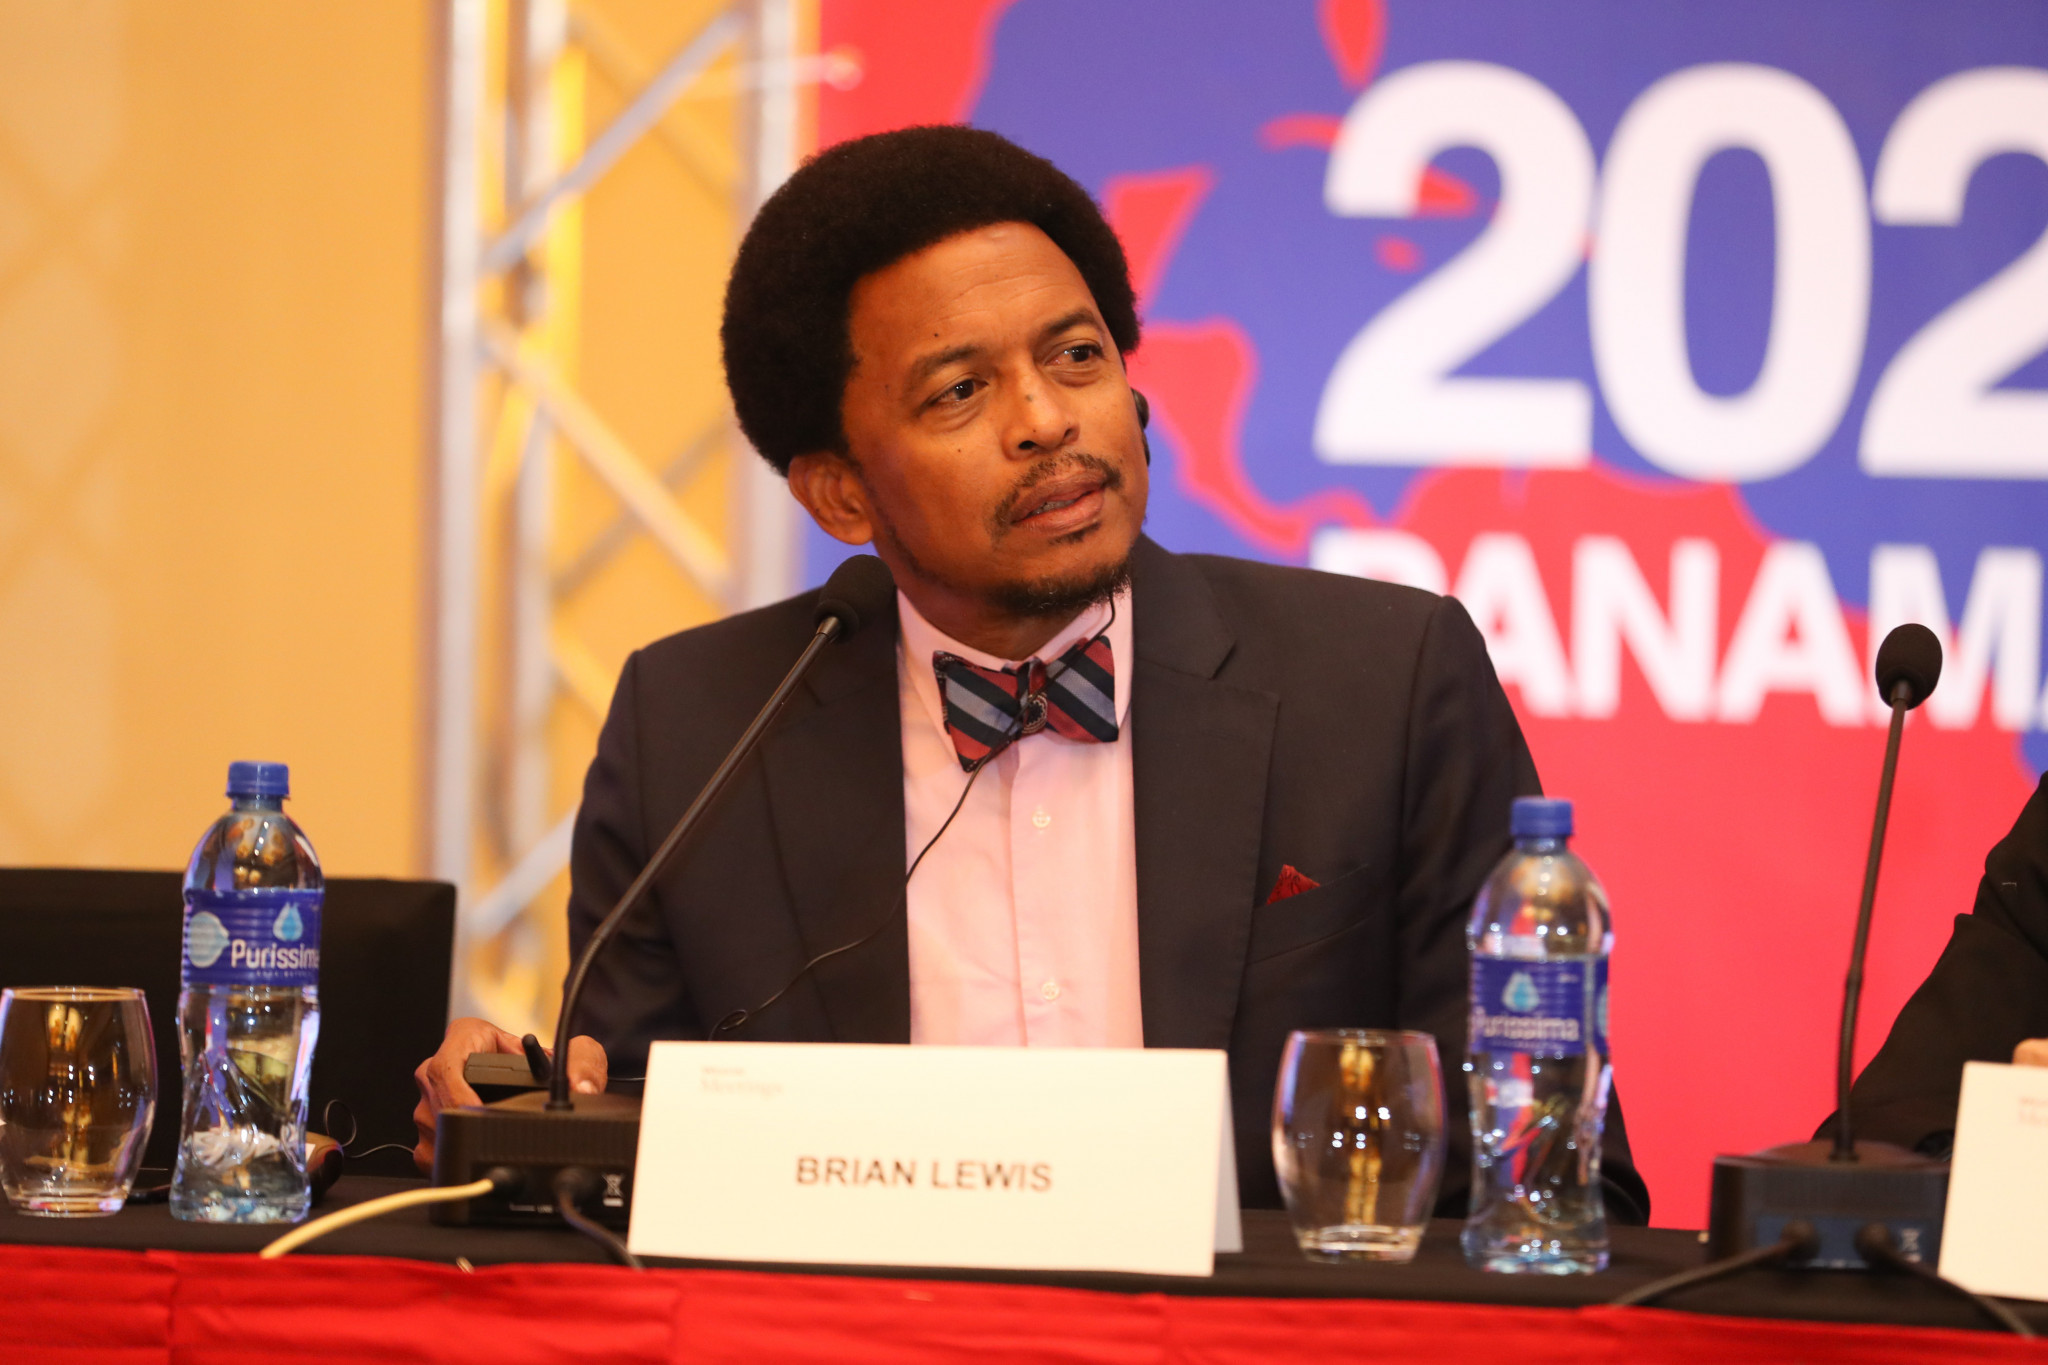 TTOC President Lewis urges AIBA to change culture at Continental Forum